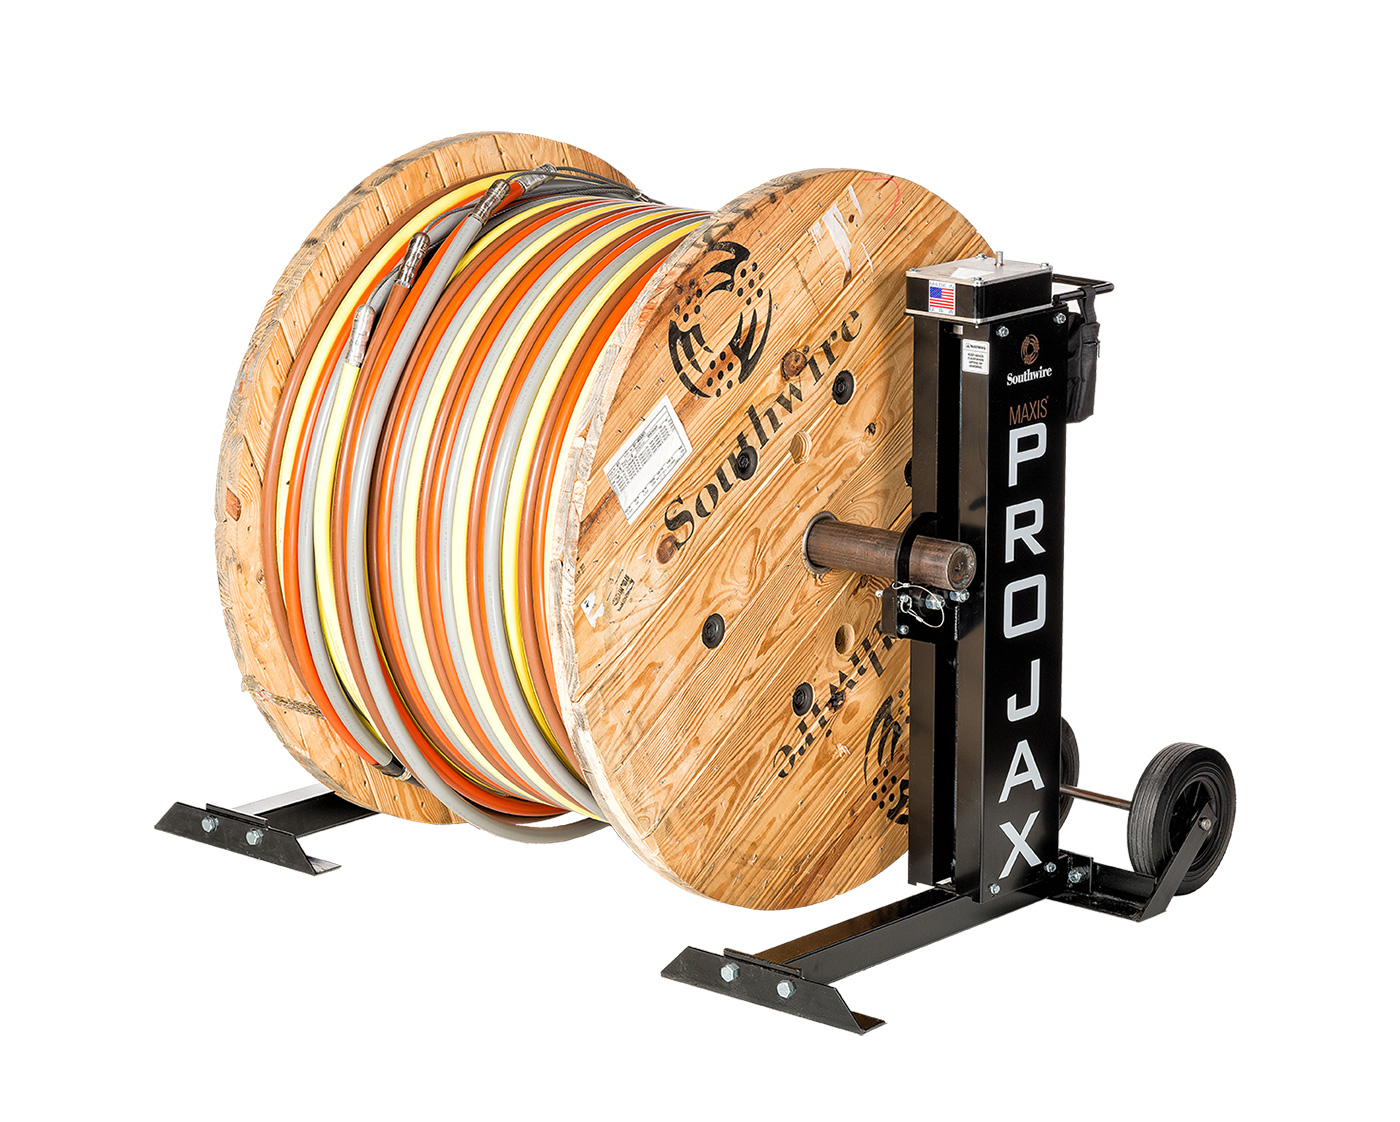 Electrical Tools Amp Accessories Reel Stands Maxis 174 Pro